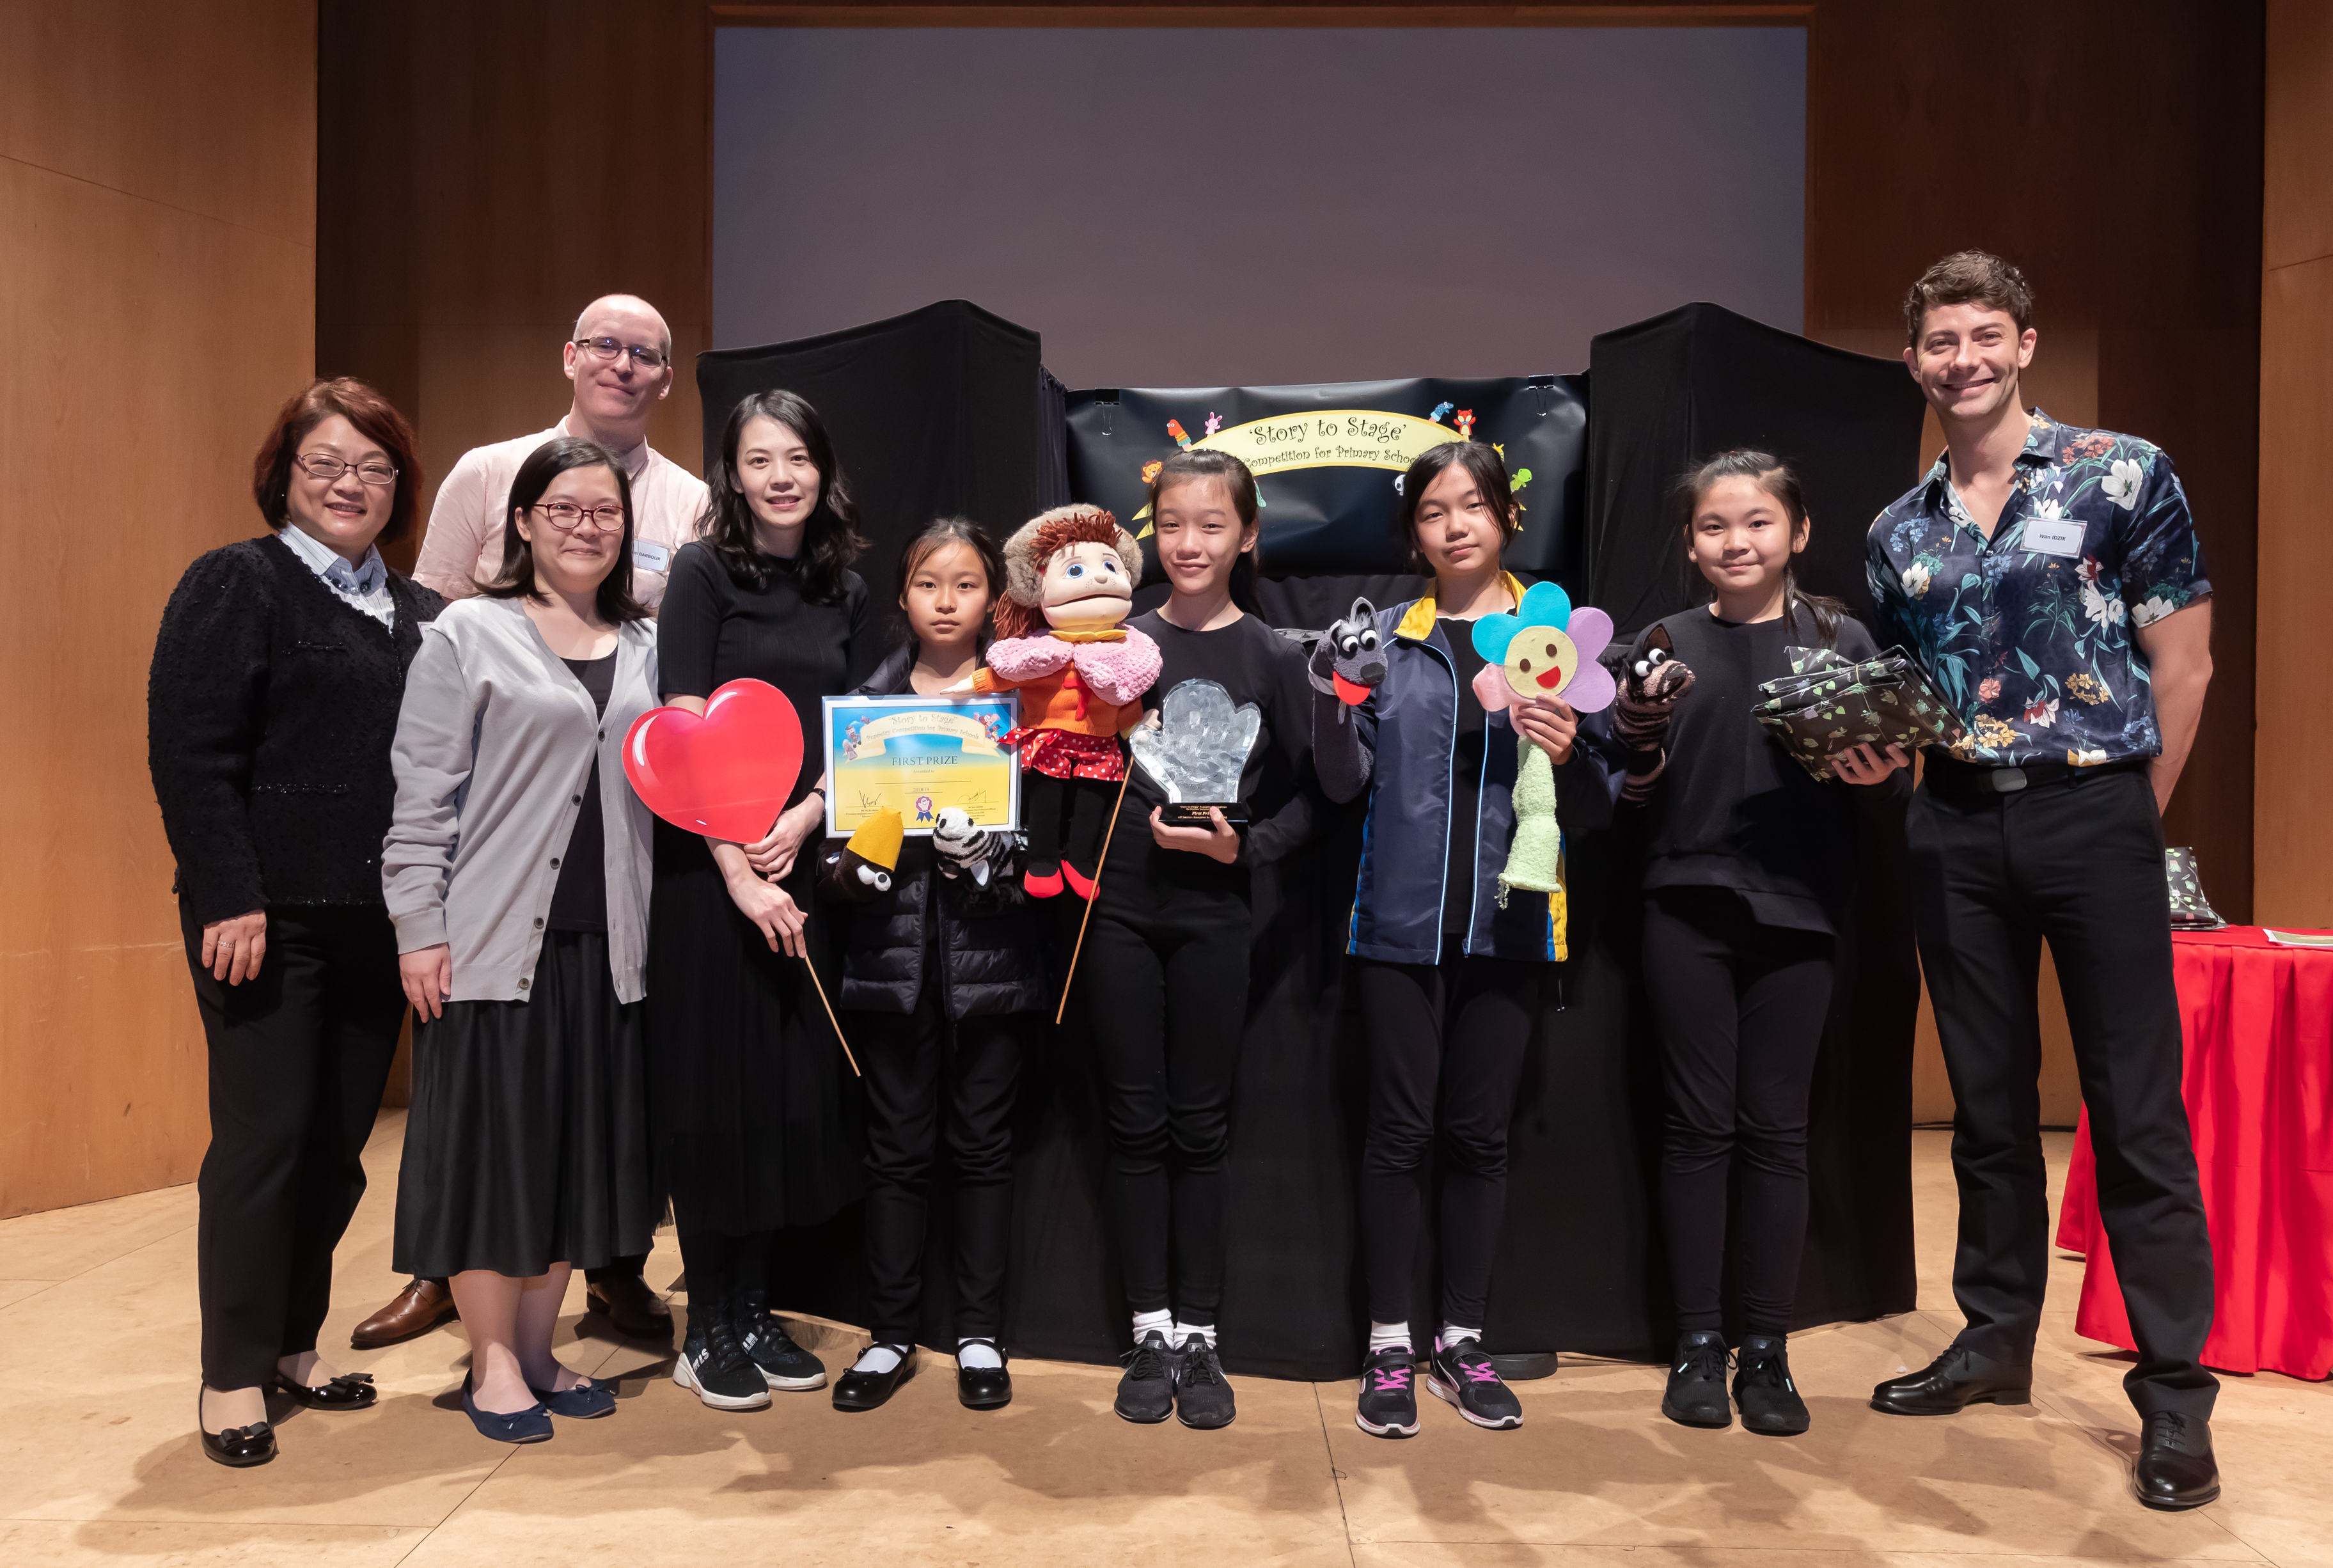 Puppetry Competition 2019 Photos of the 1st Prize Puppetry Teams